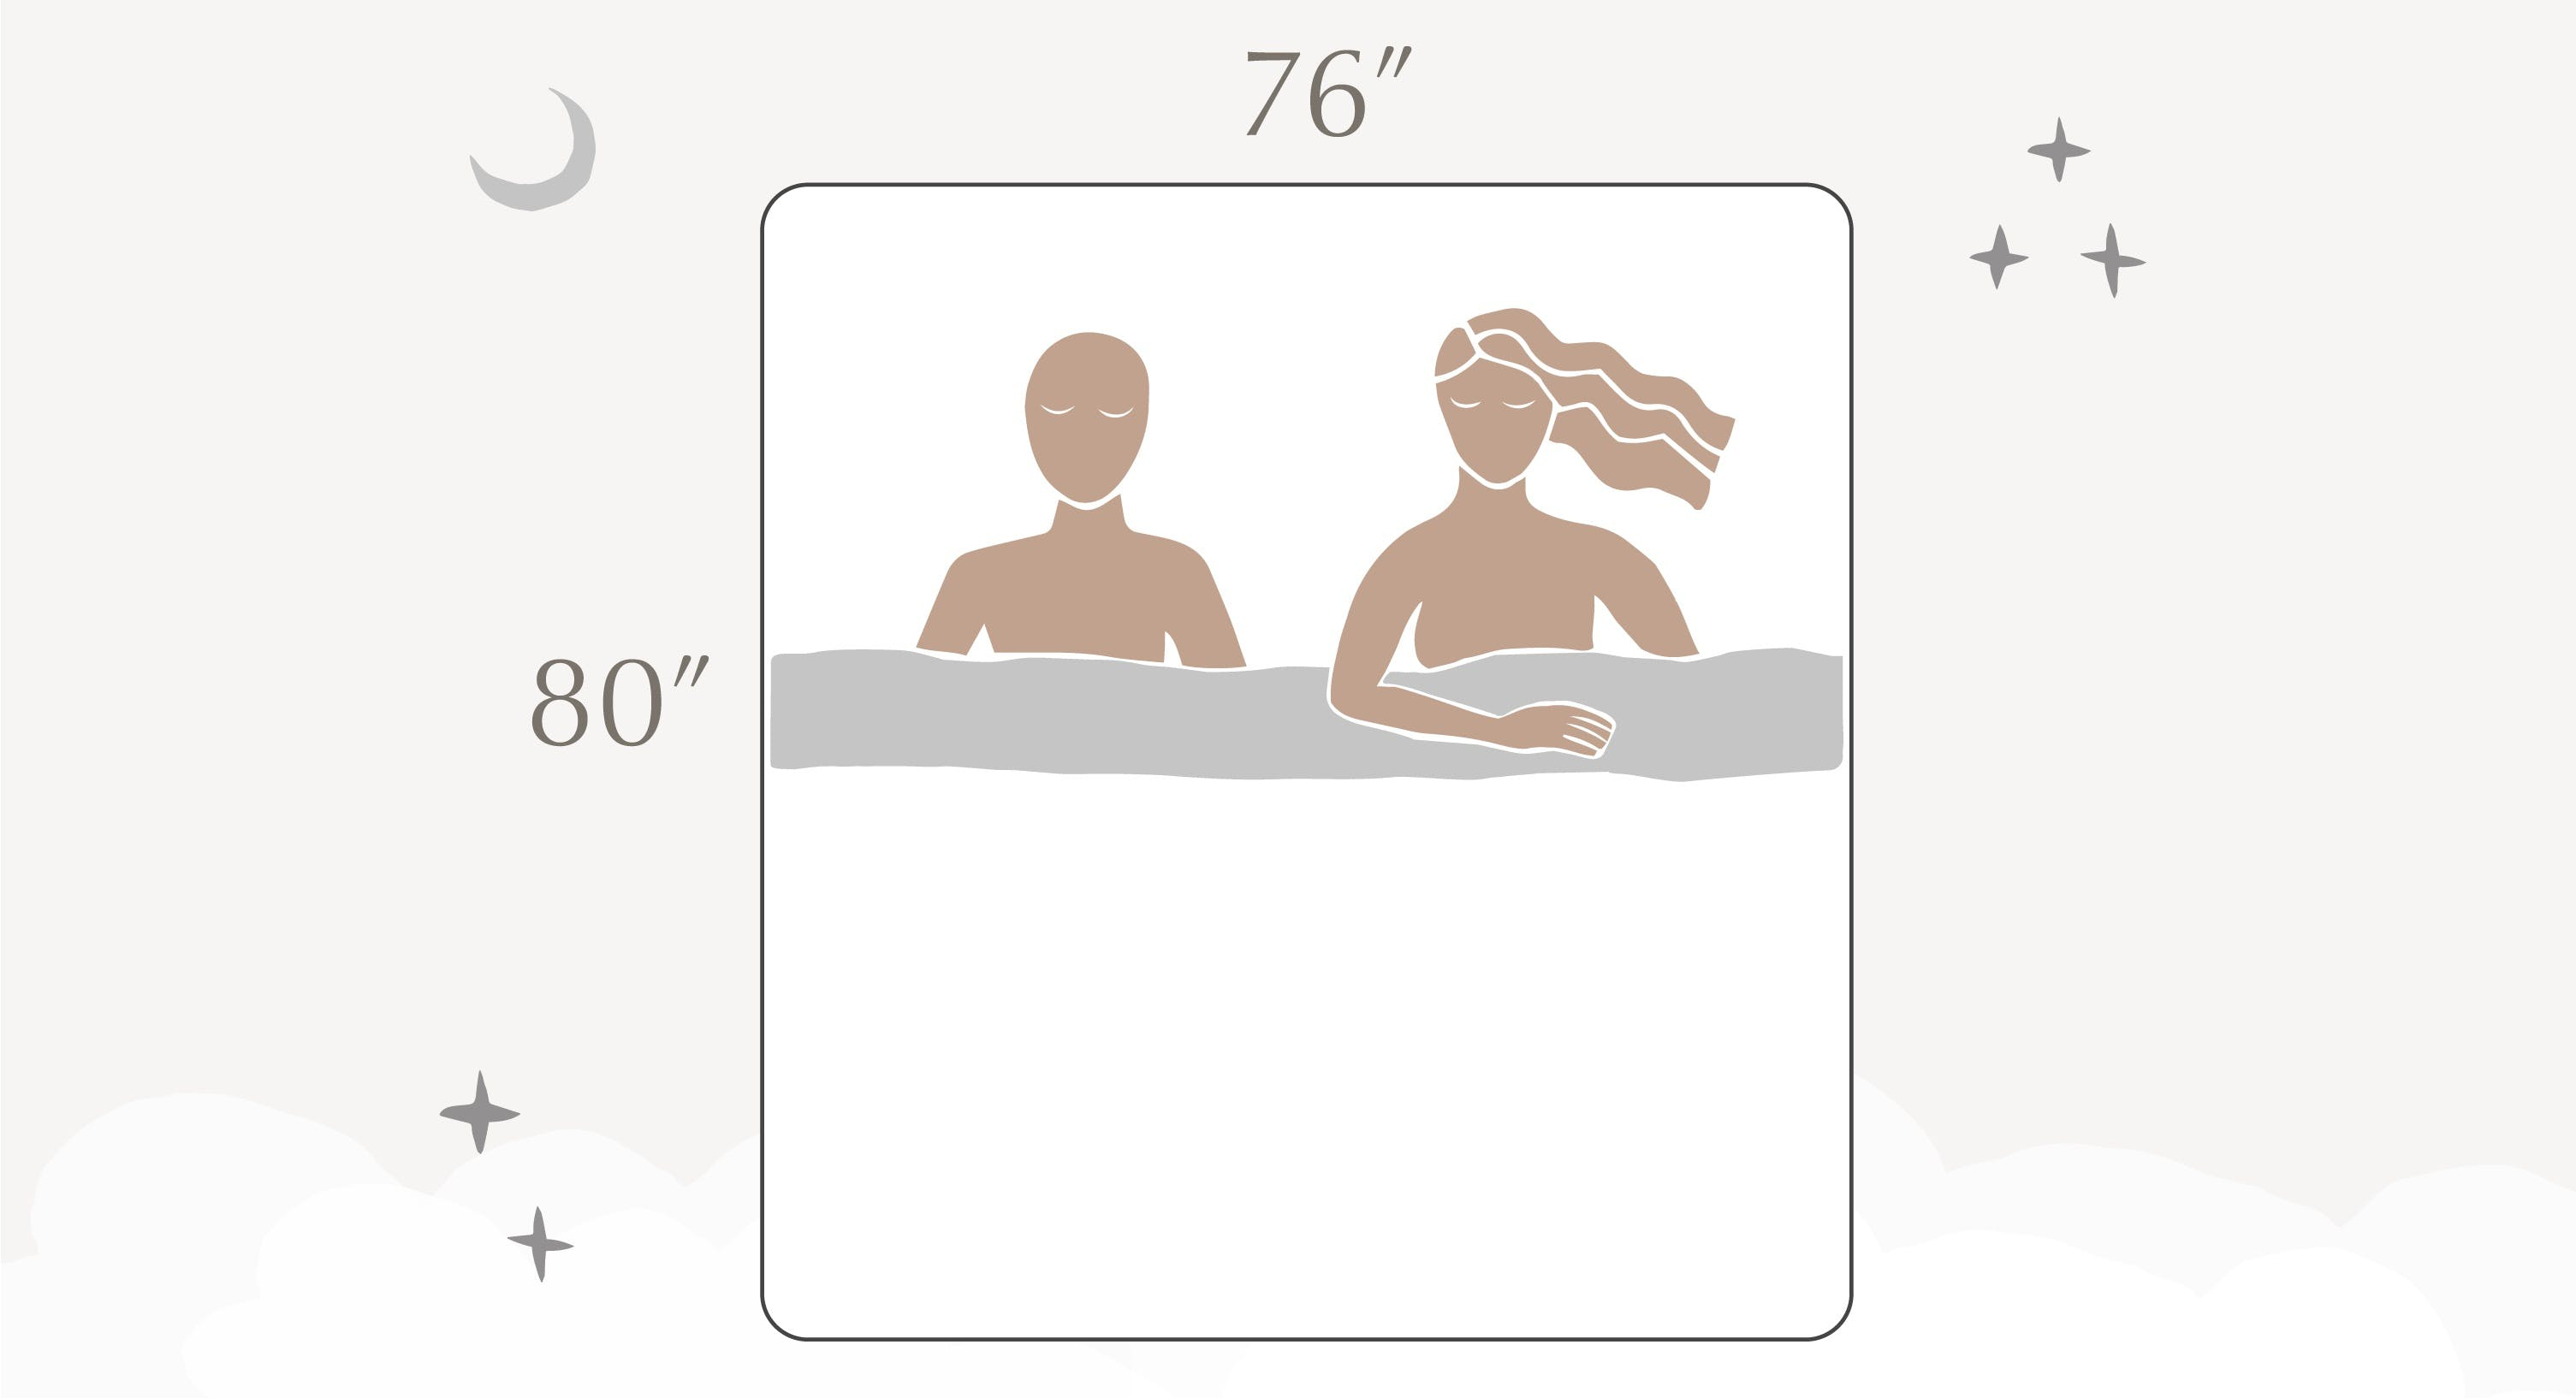 king size bed dimensions illustration